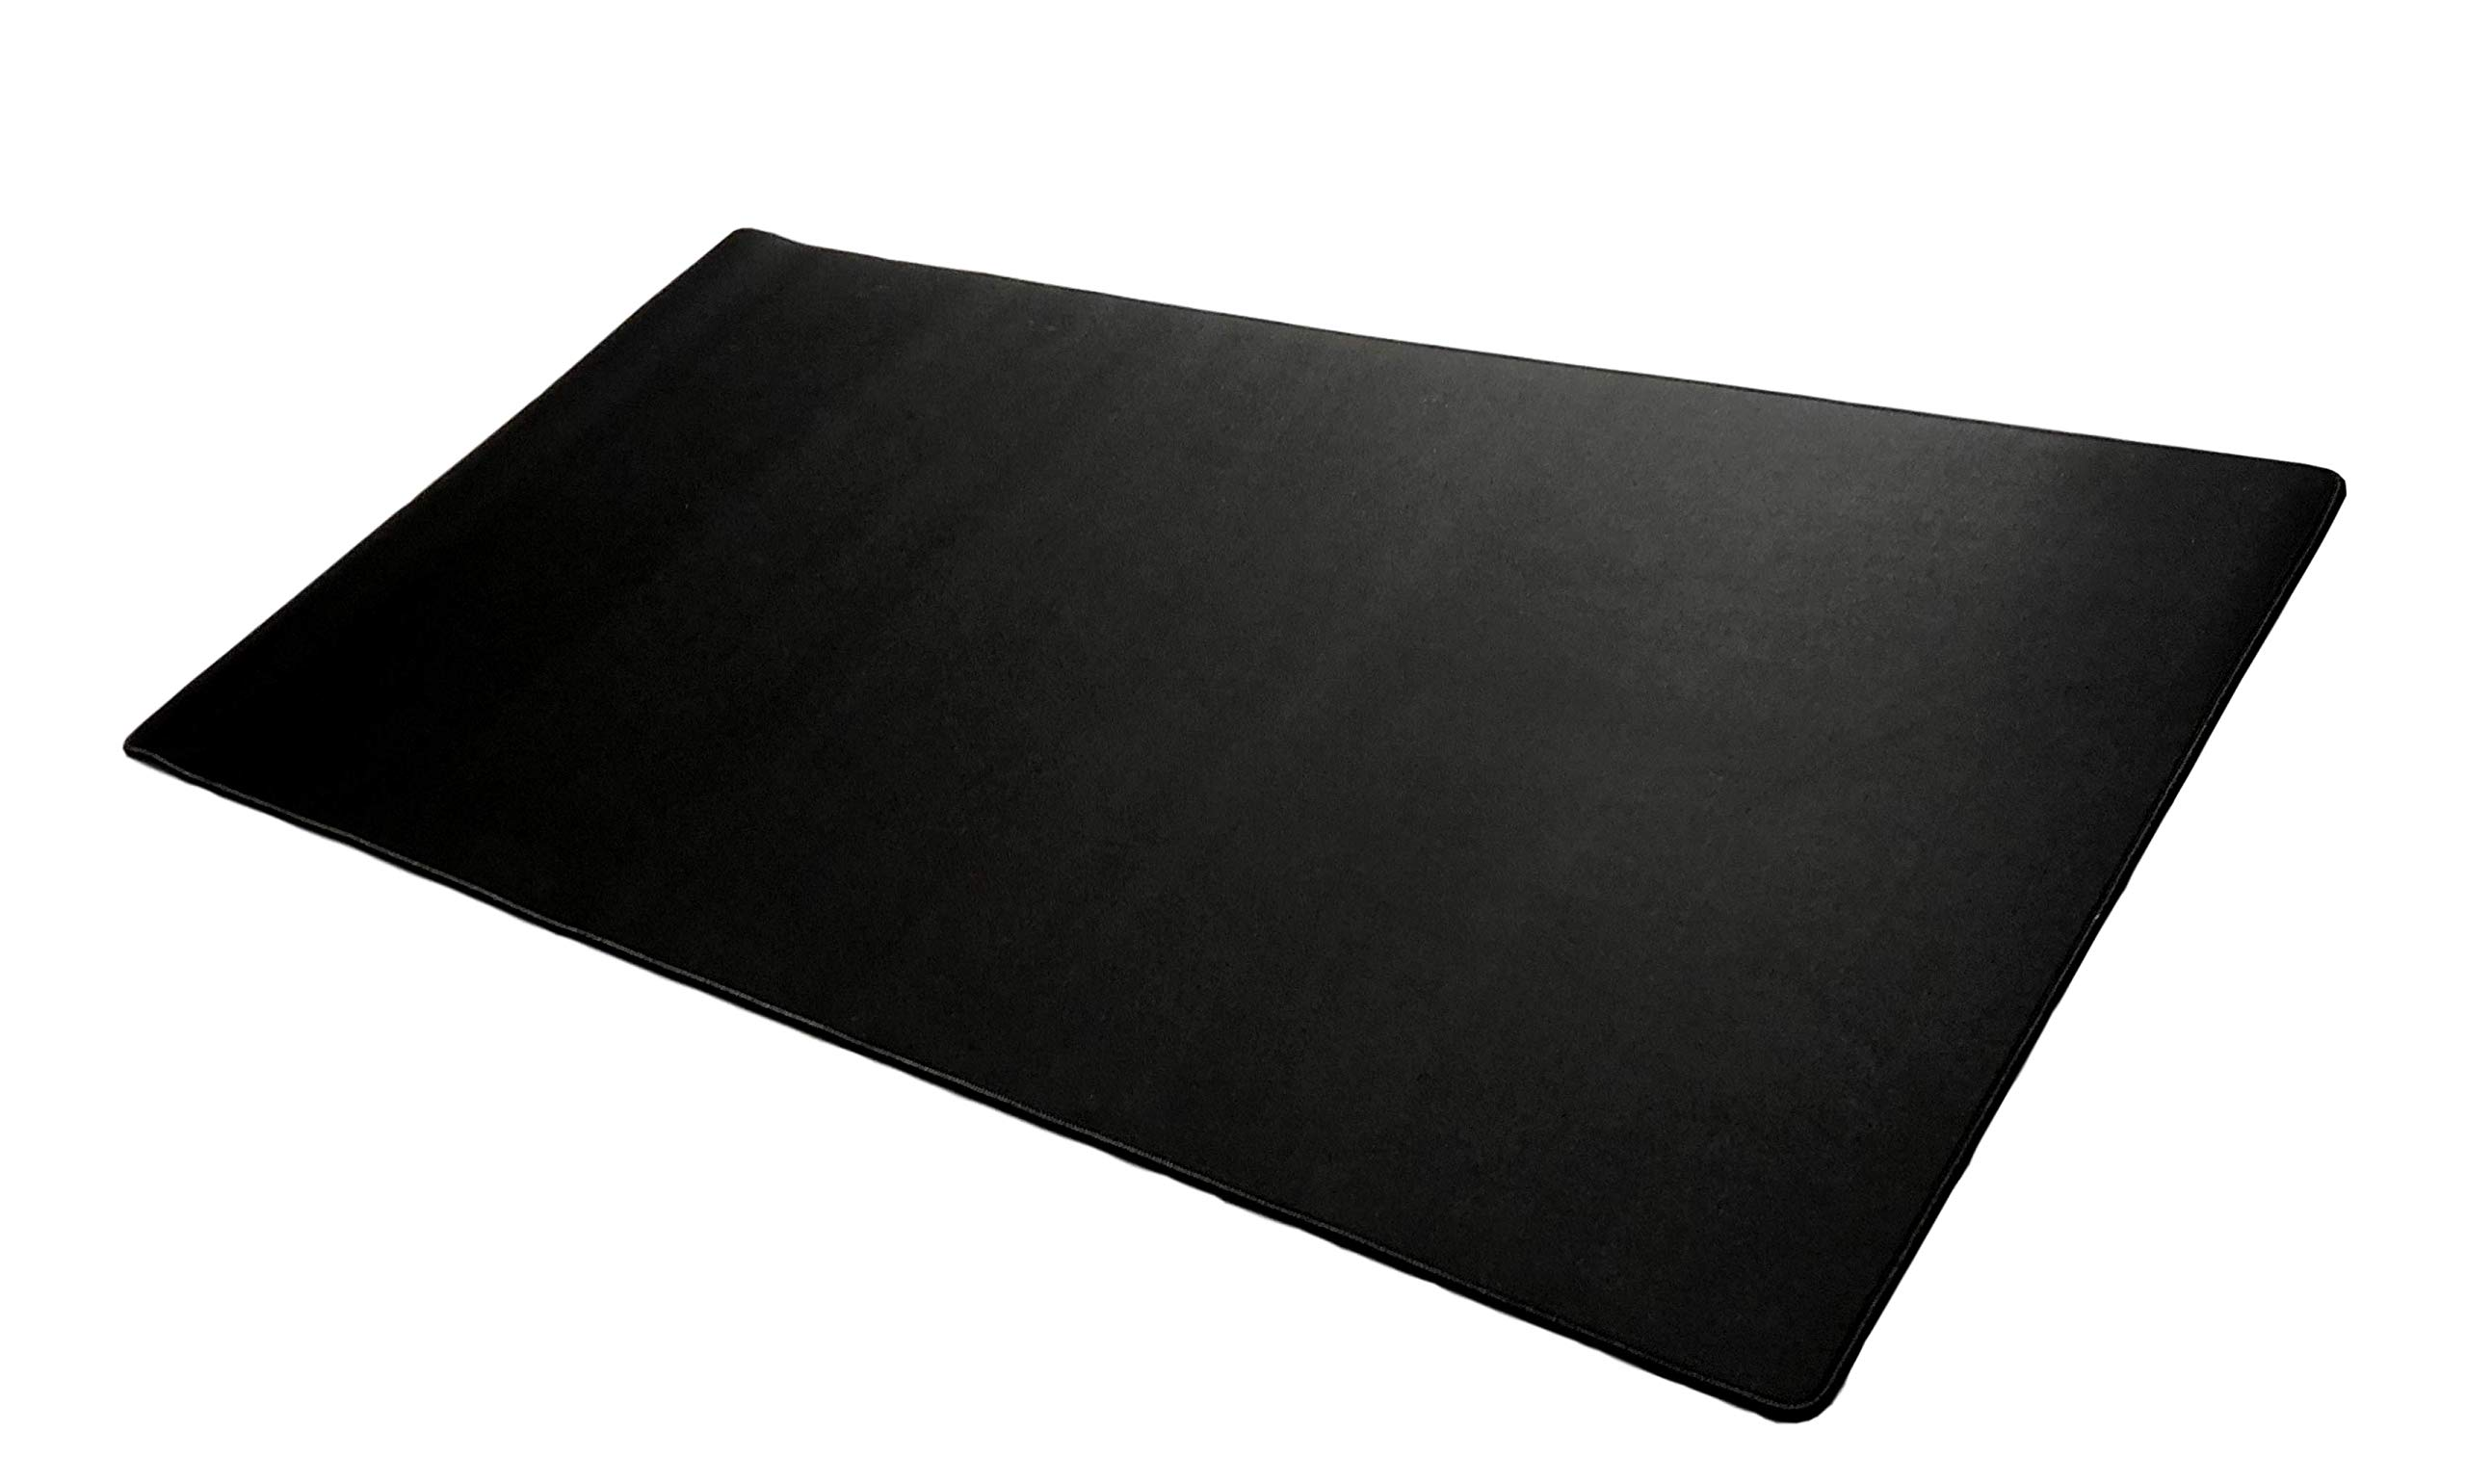 Extended Mega Size Custom Professional Gaming Mouse Pad - Anti Slip Rubber Base - Stitched Edges - Large Desk Mat - 48'' x 24'' x 0.16'' (Mega, All Black/No Logo) by Warehouse 151